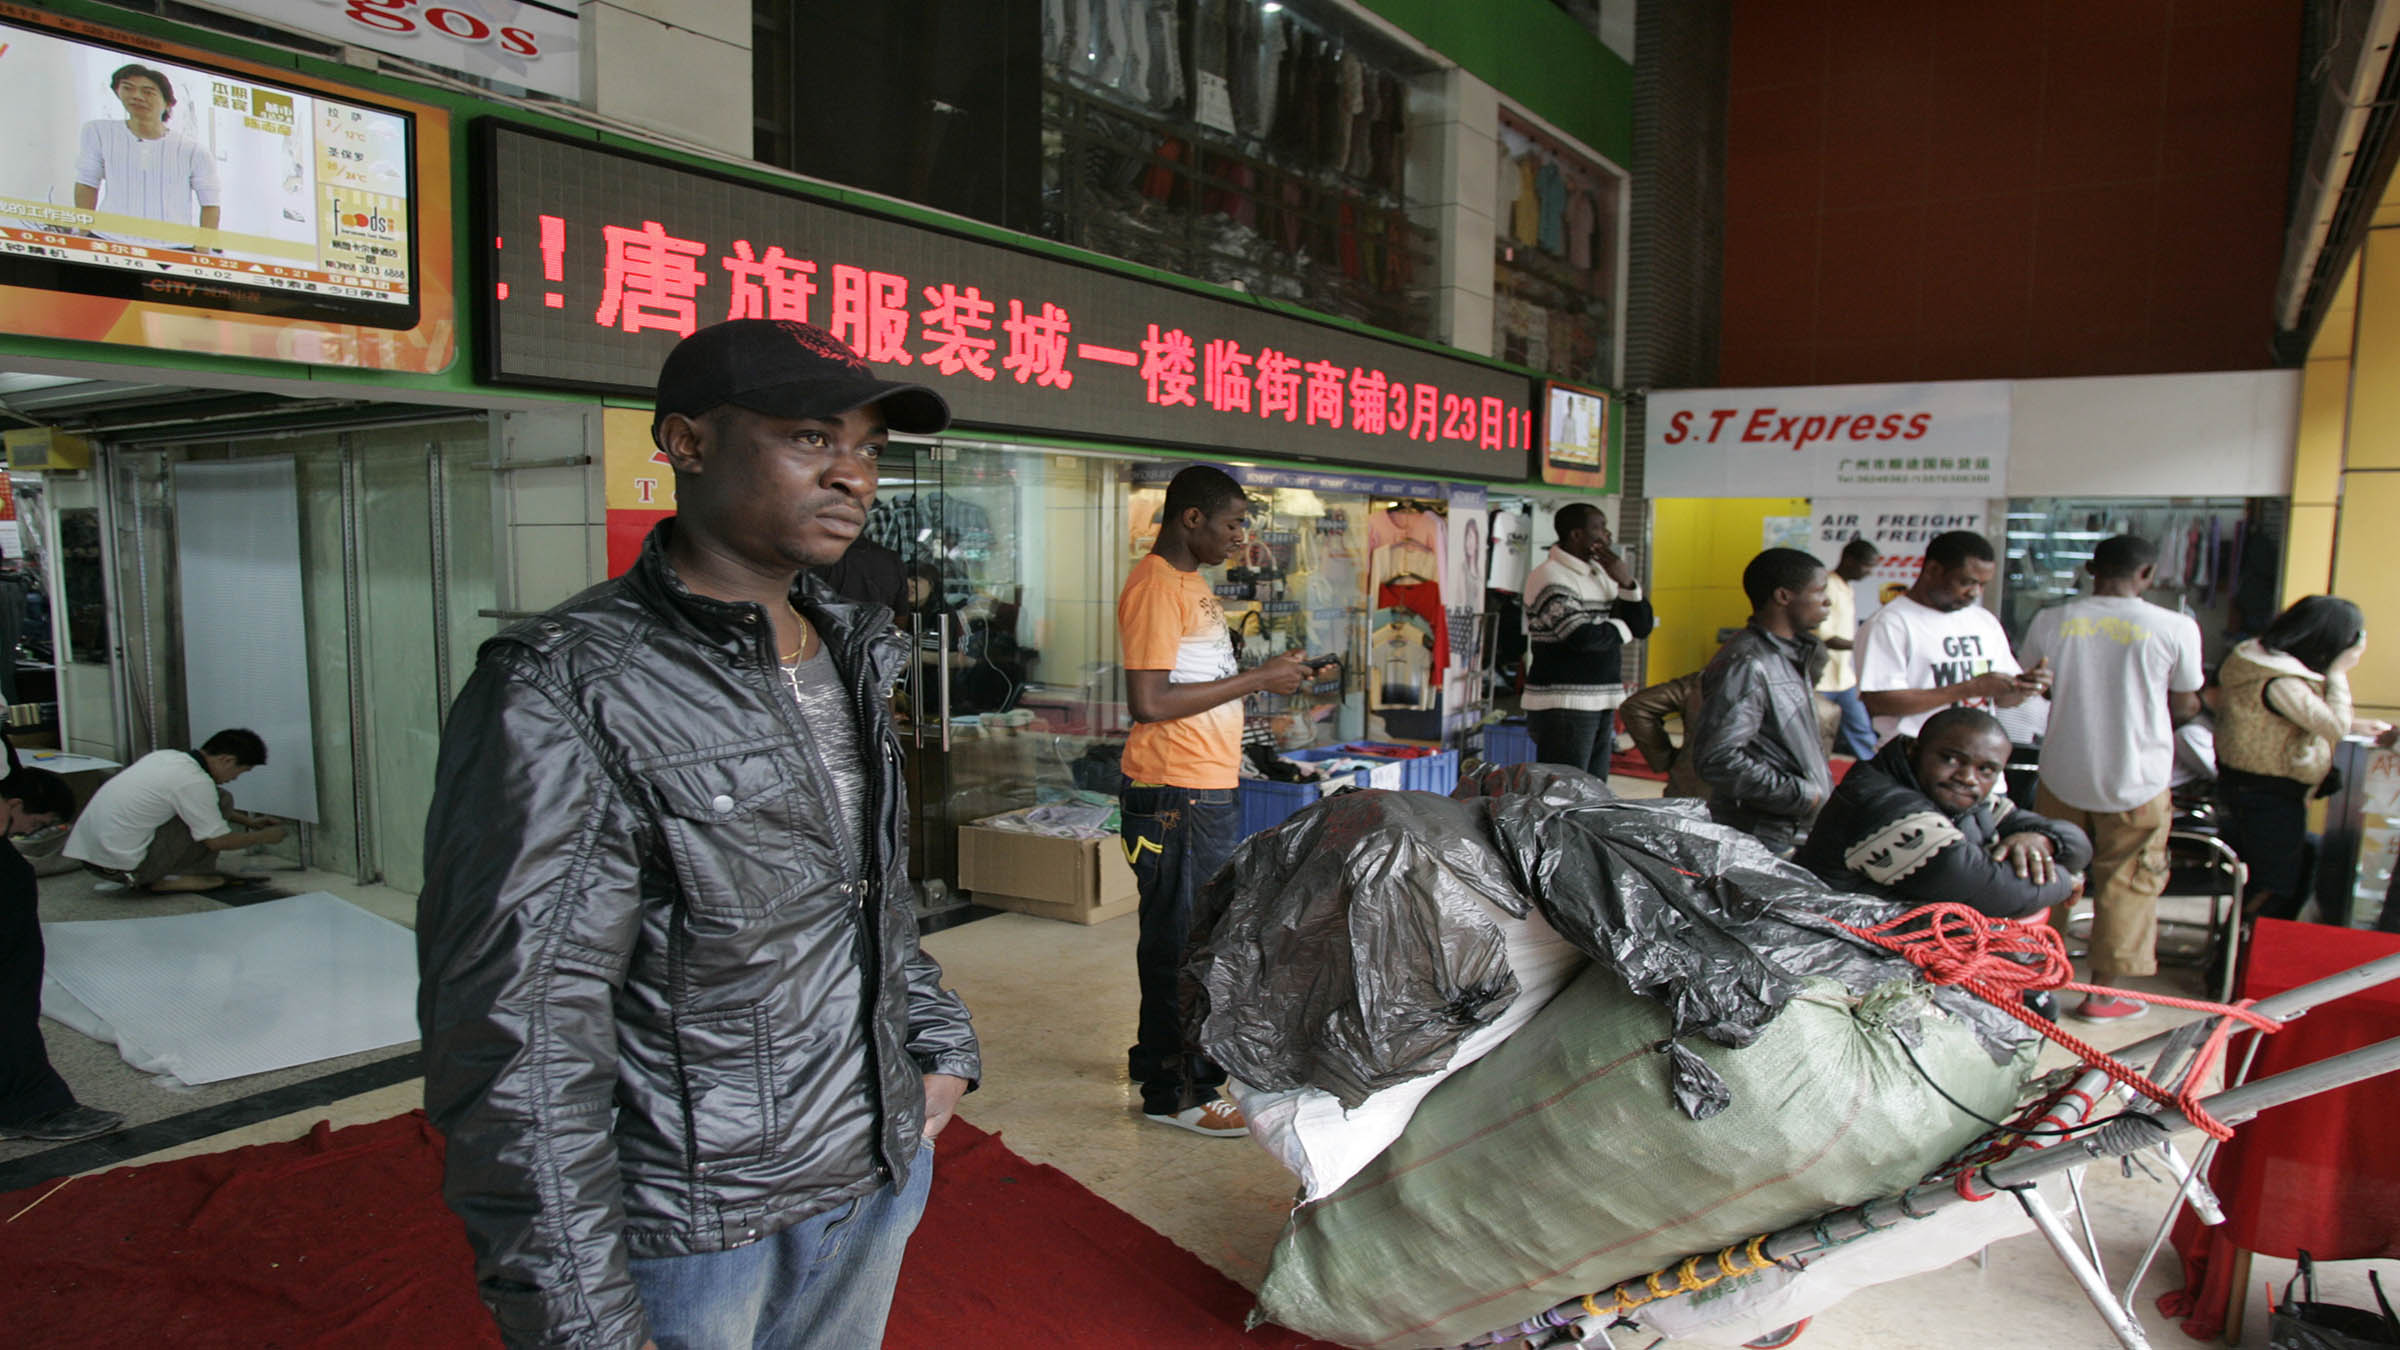 An African man stands near a shopping mall in the southern Chinese city of Guangzhou in Guangdong province March 27, 2009. In the past few years, tens of thousands of African and Arab traders have thronged to export hubs like Guangzhou and Yiwu to seek their fortunes, sourcing cheap China-made goods back home to massive markups in a growing, lucrative trade. Picture taken March 27, 2009.  To match feature FRICTION-CHINA/AFRICANS    REUTERS/James Pomfret   (CHINA POLITICS BUSINESS) - RTR26Y9O